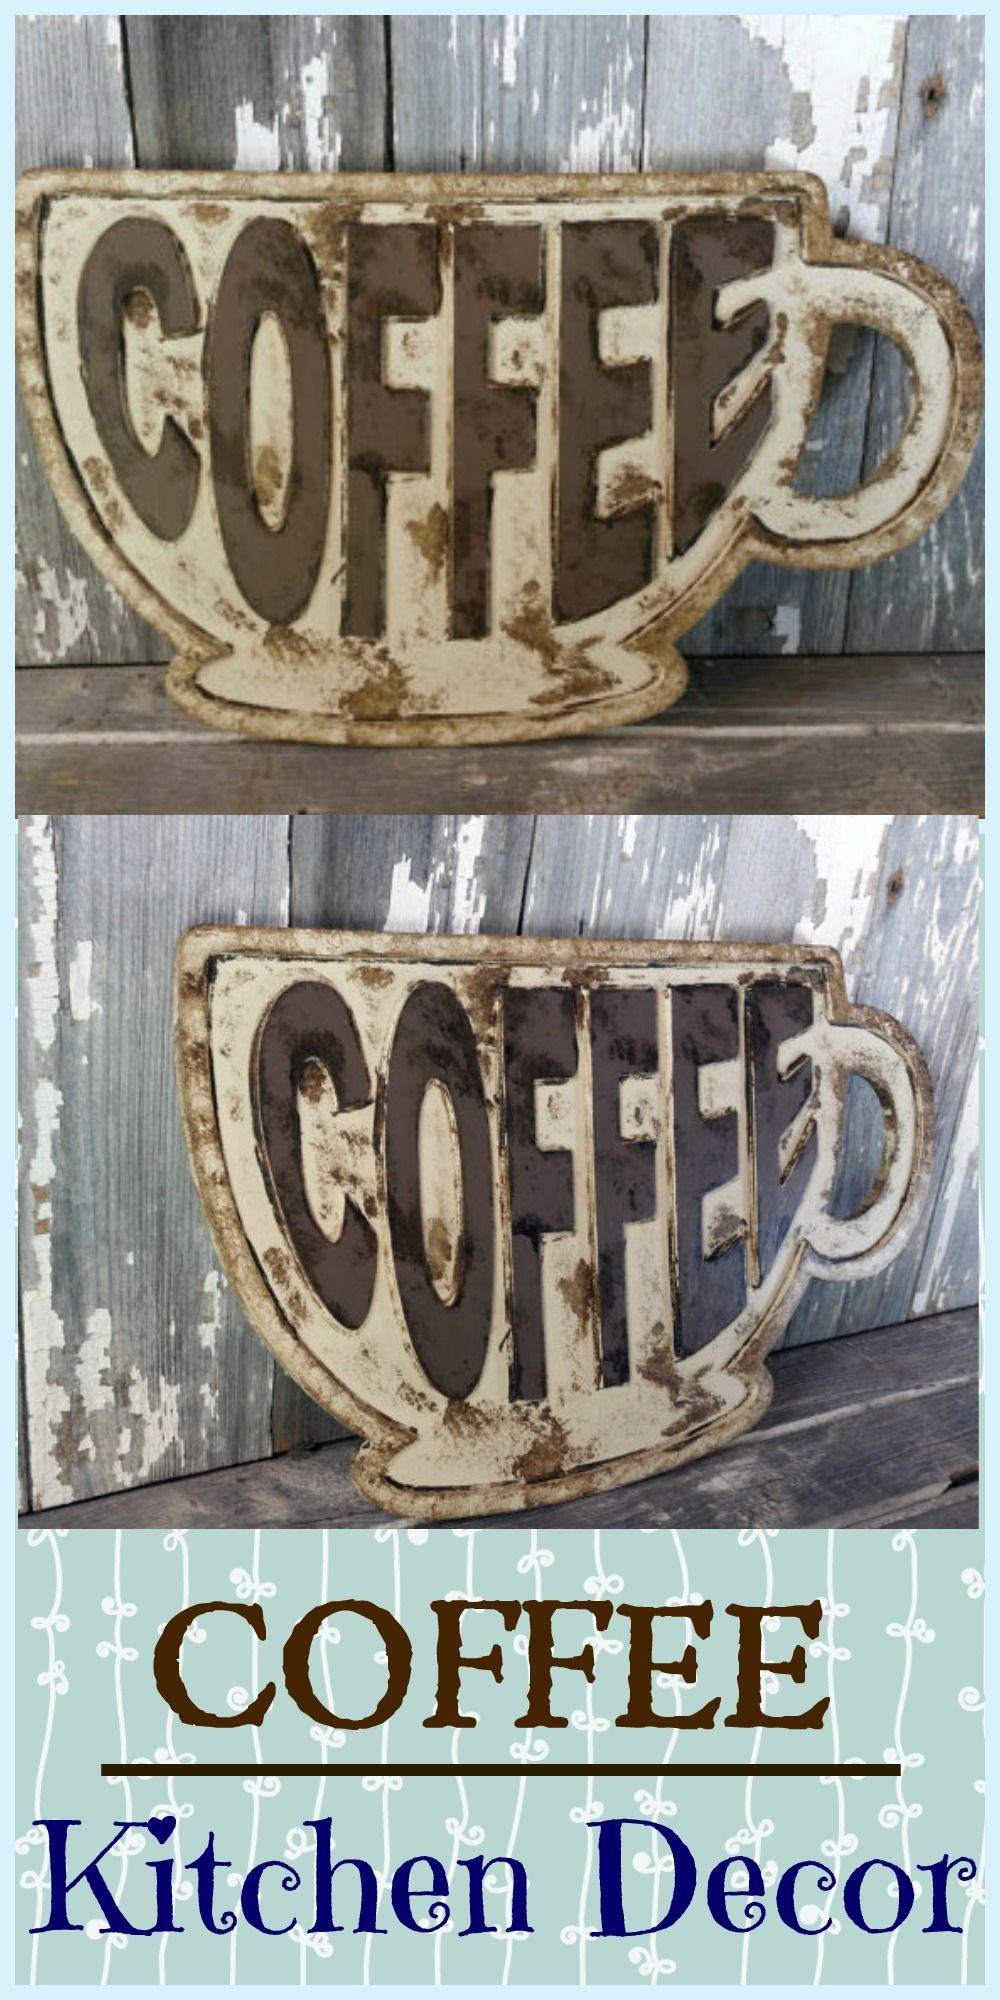 Coffee Kitchen Decor. I love this coffee wall sign that has a rustic ...